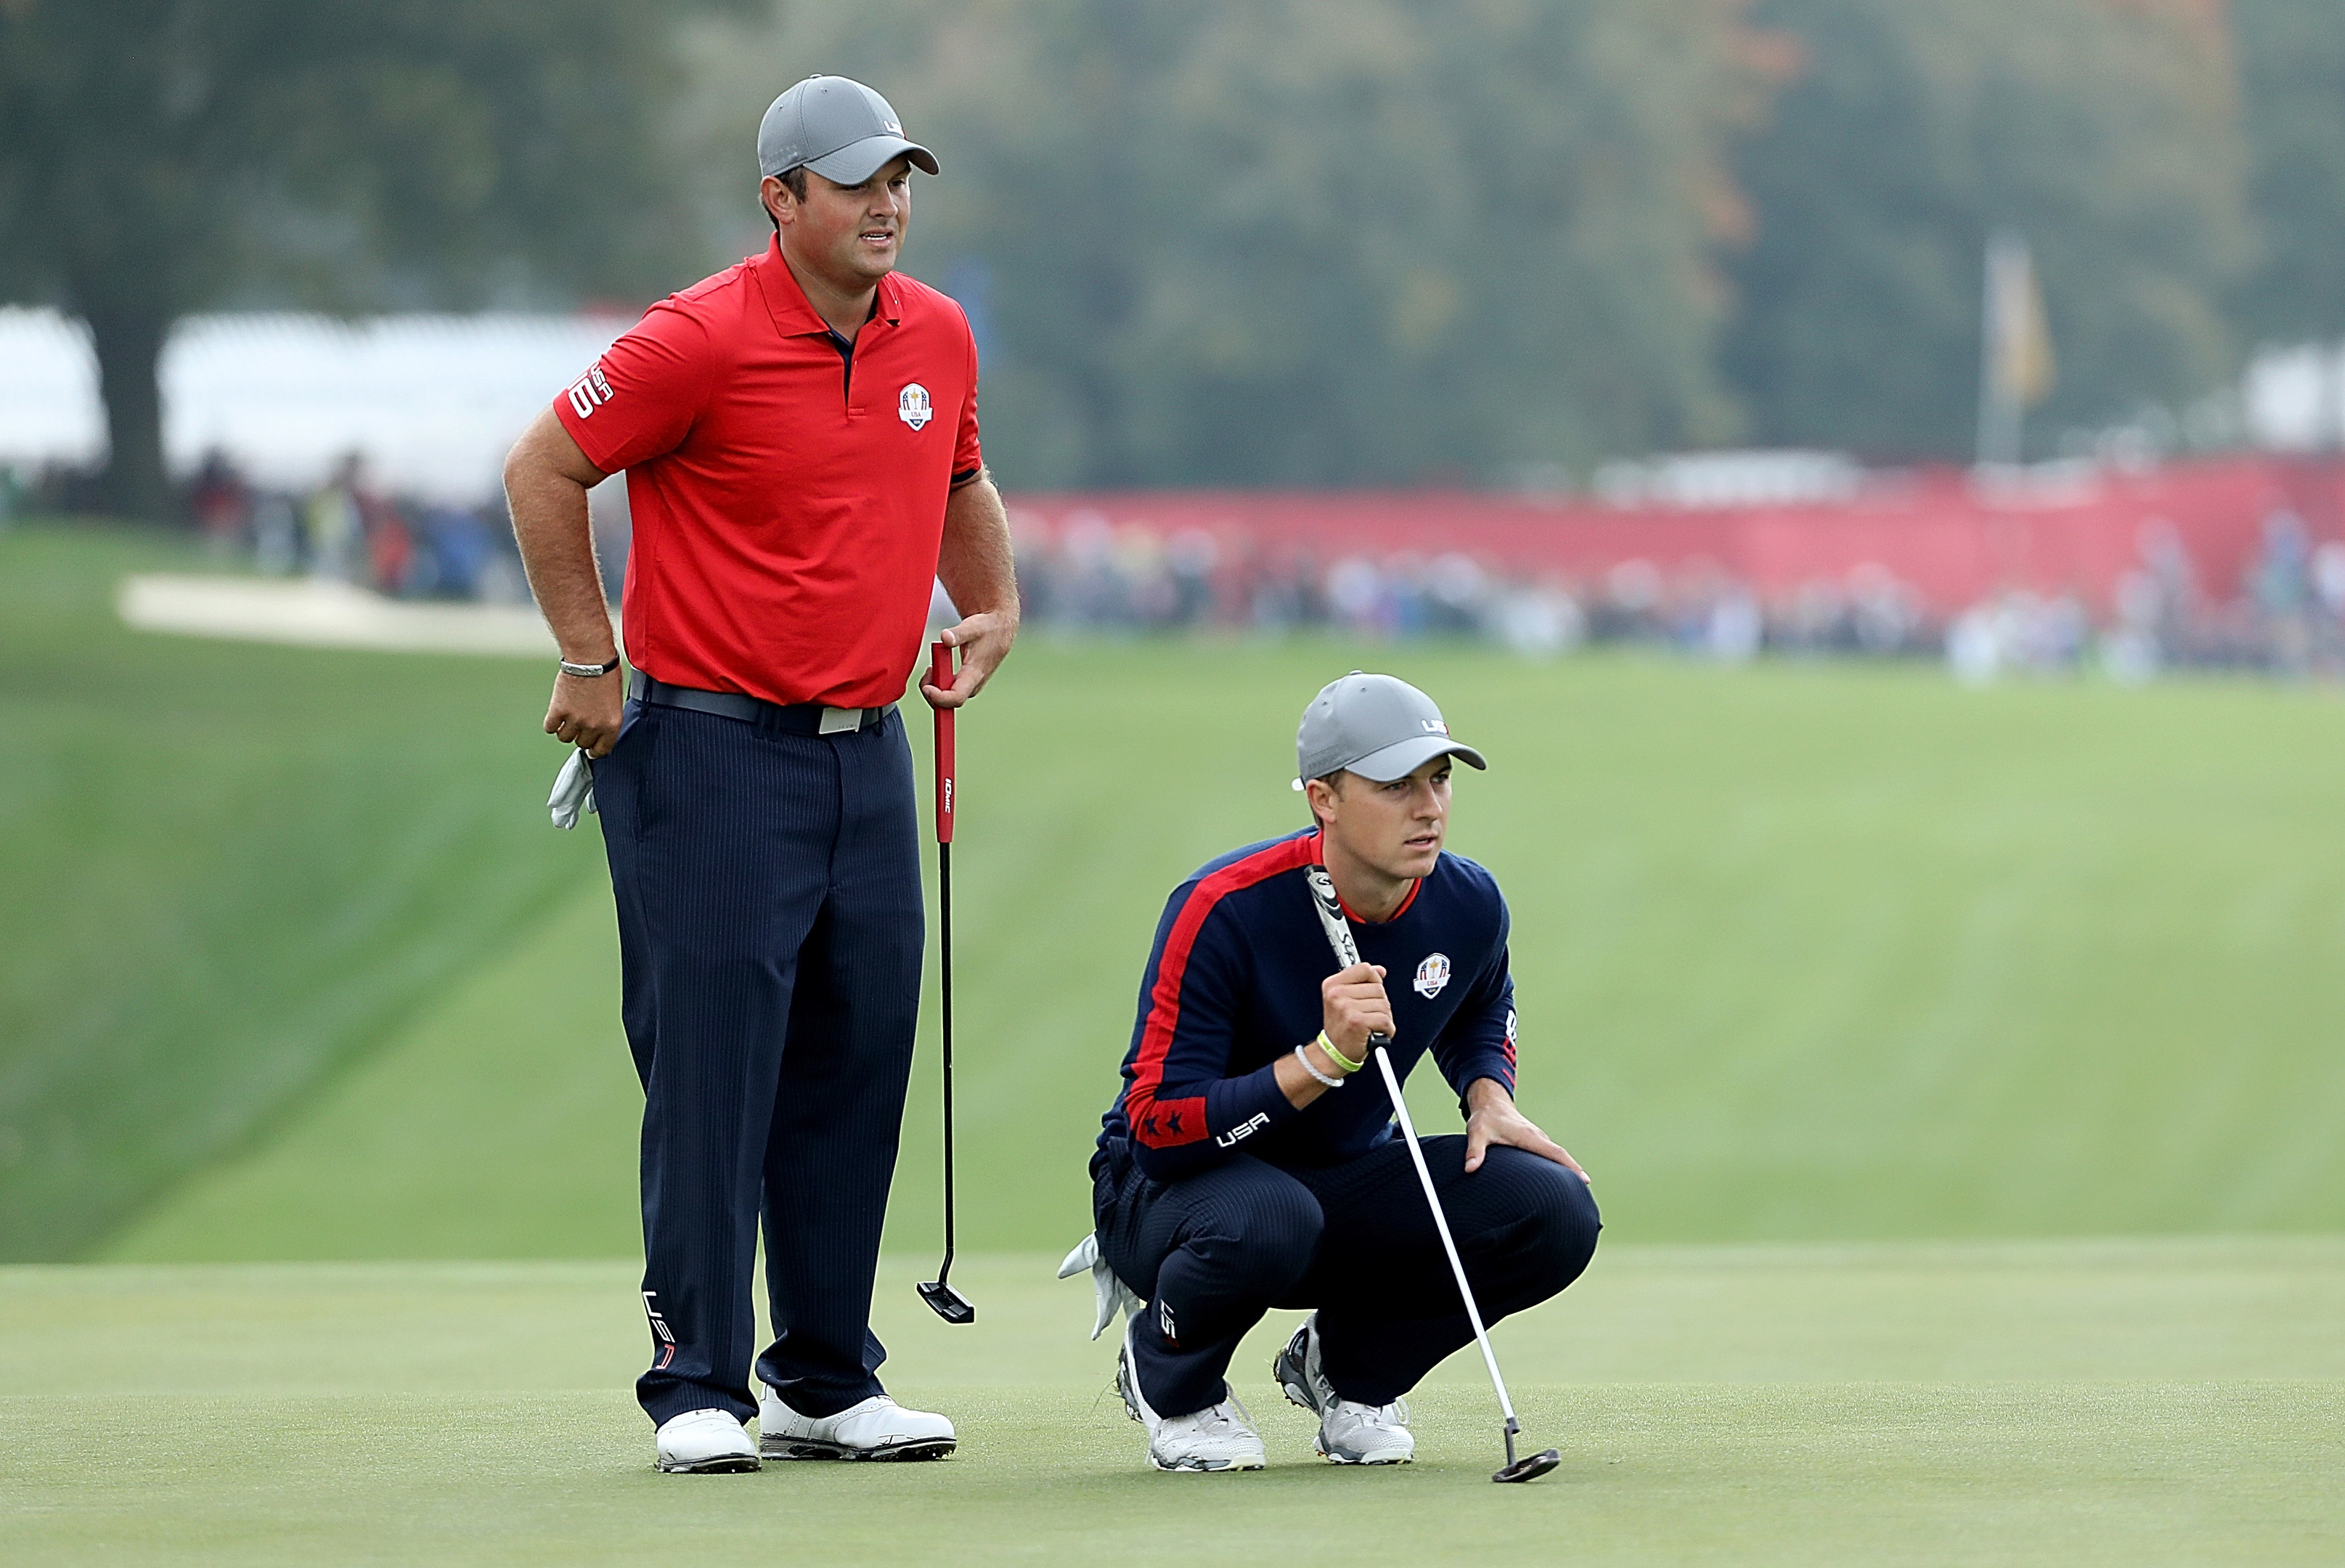 Patrick Reed and Jordan Spieth kept their unbeaten record as a duo at Hazeltine in the USA's opening foursomes sweep.